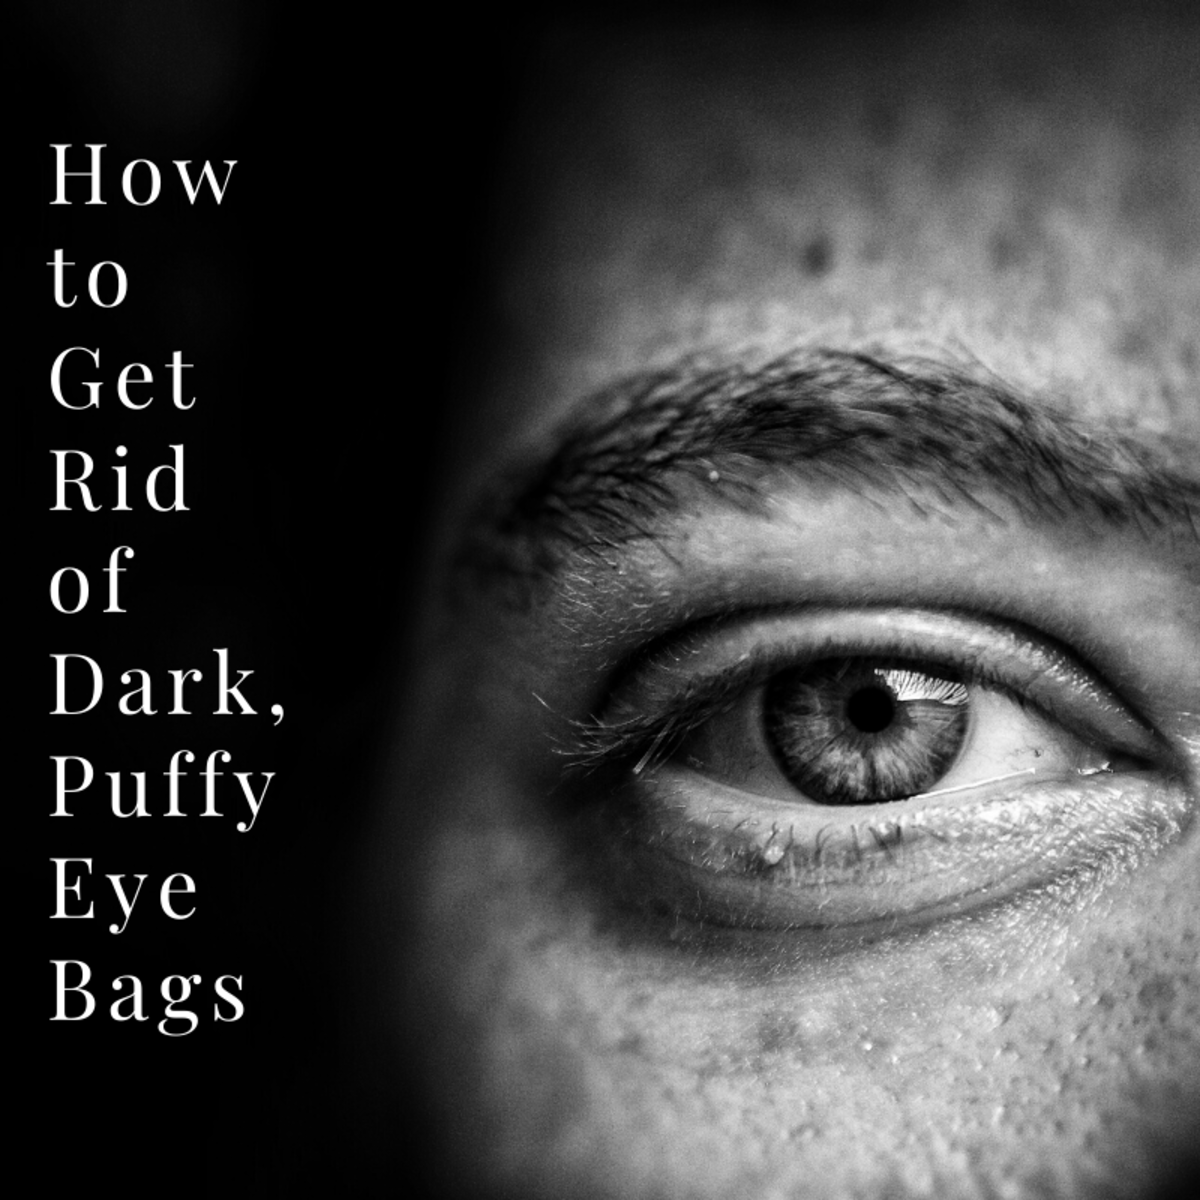 How to Get Rid of Dark, Puffy Eye Bags